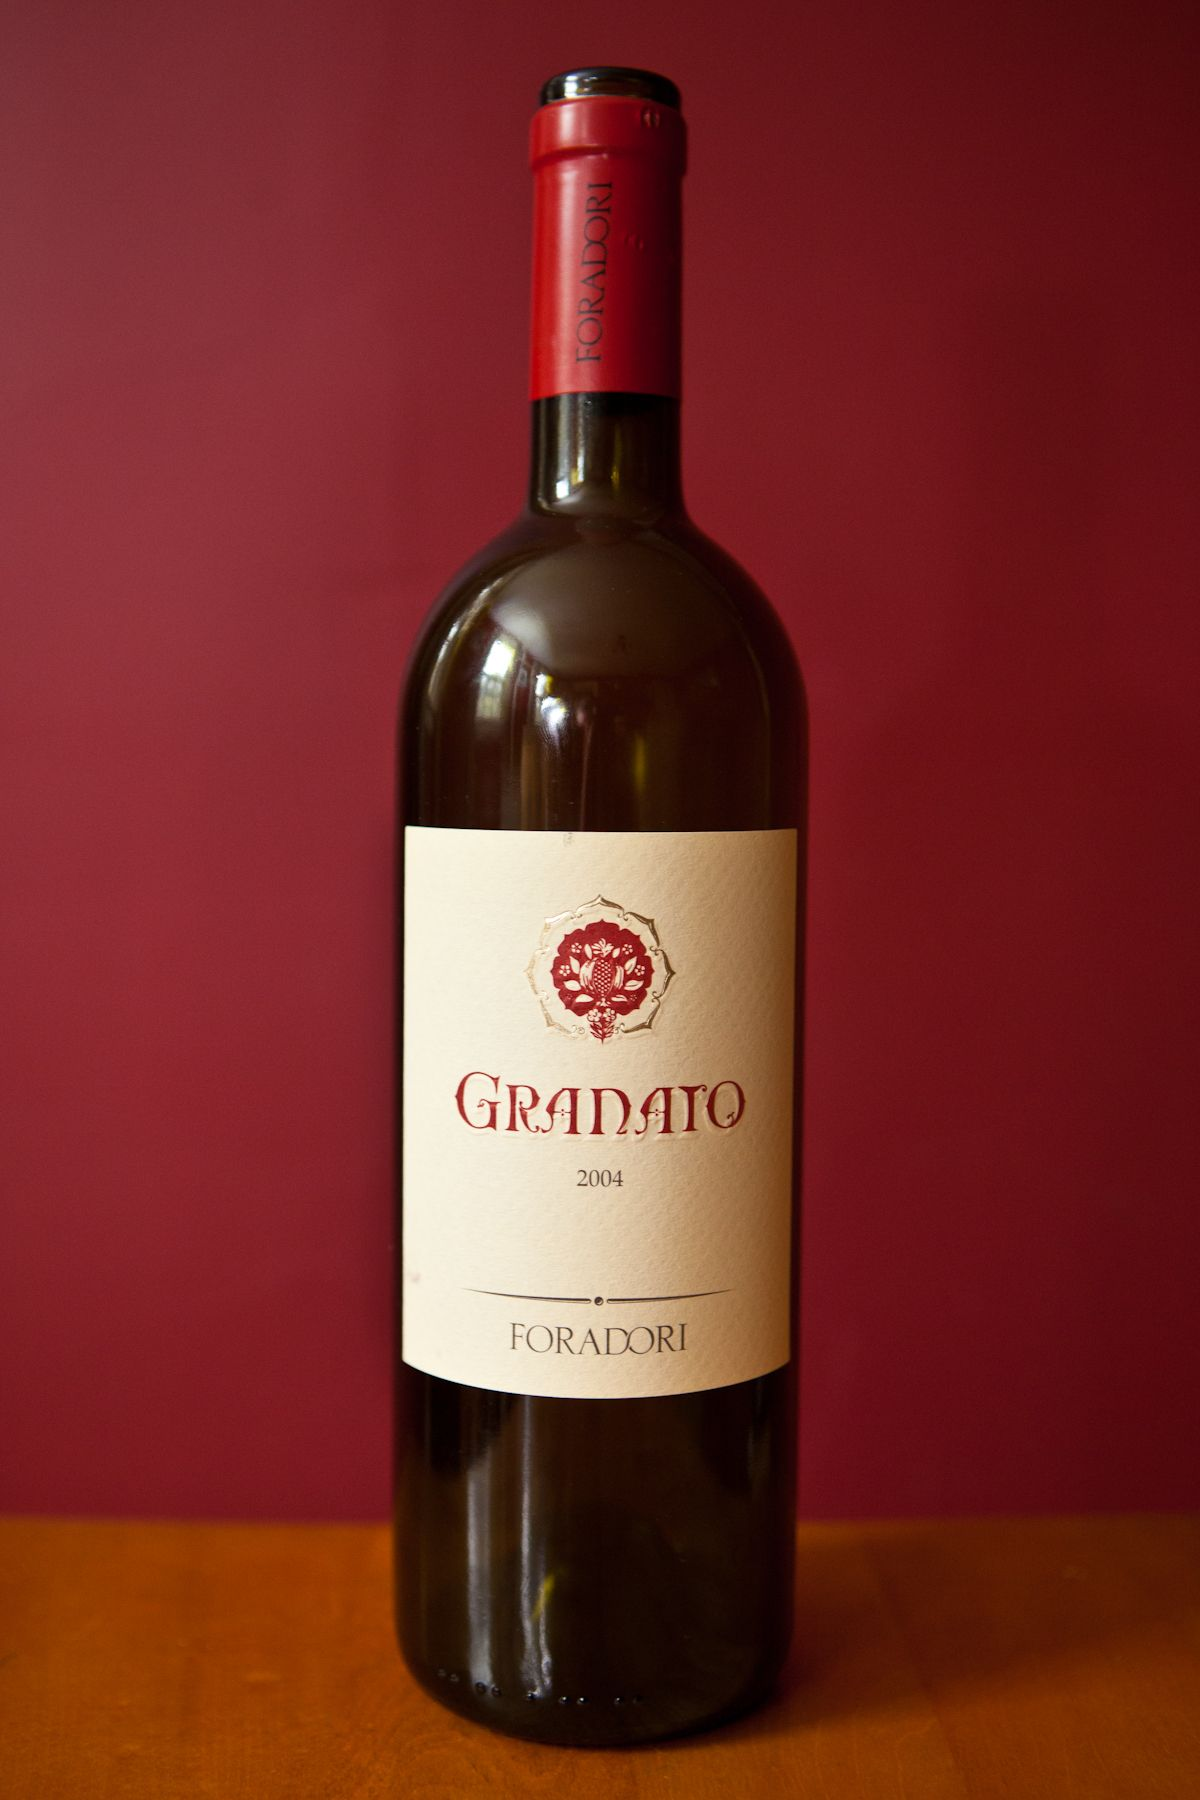 Granato Foradori Organic Wine Wines Wine Bottle